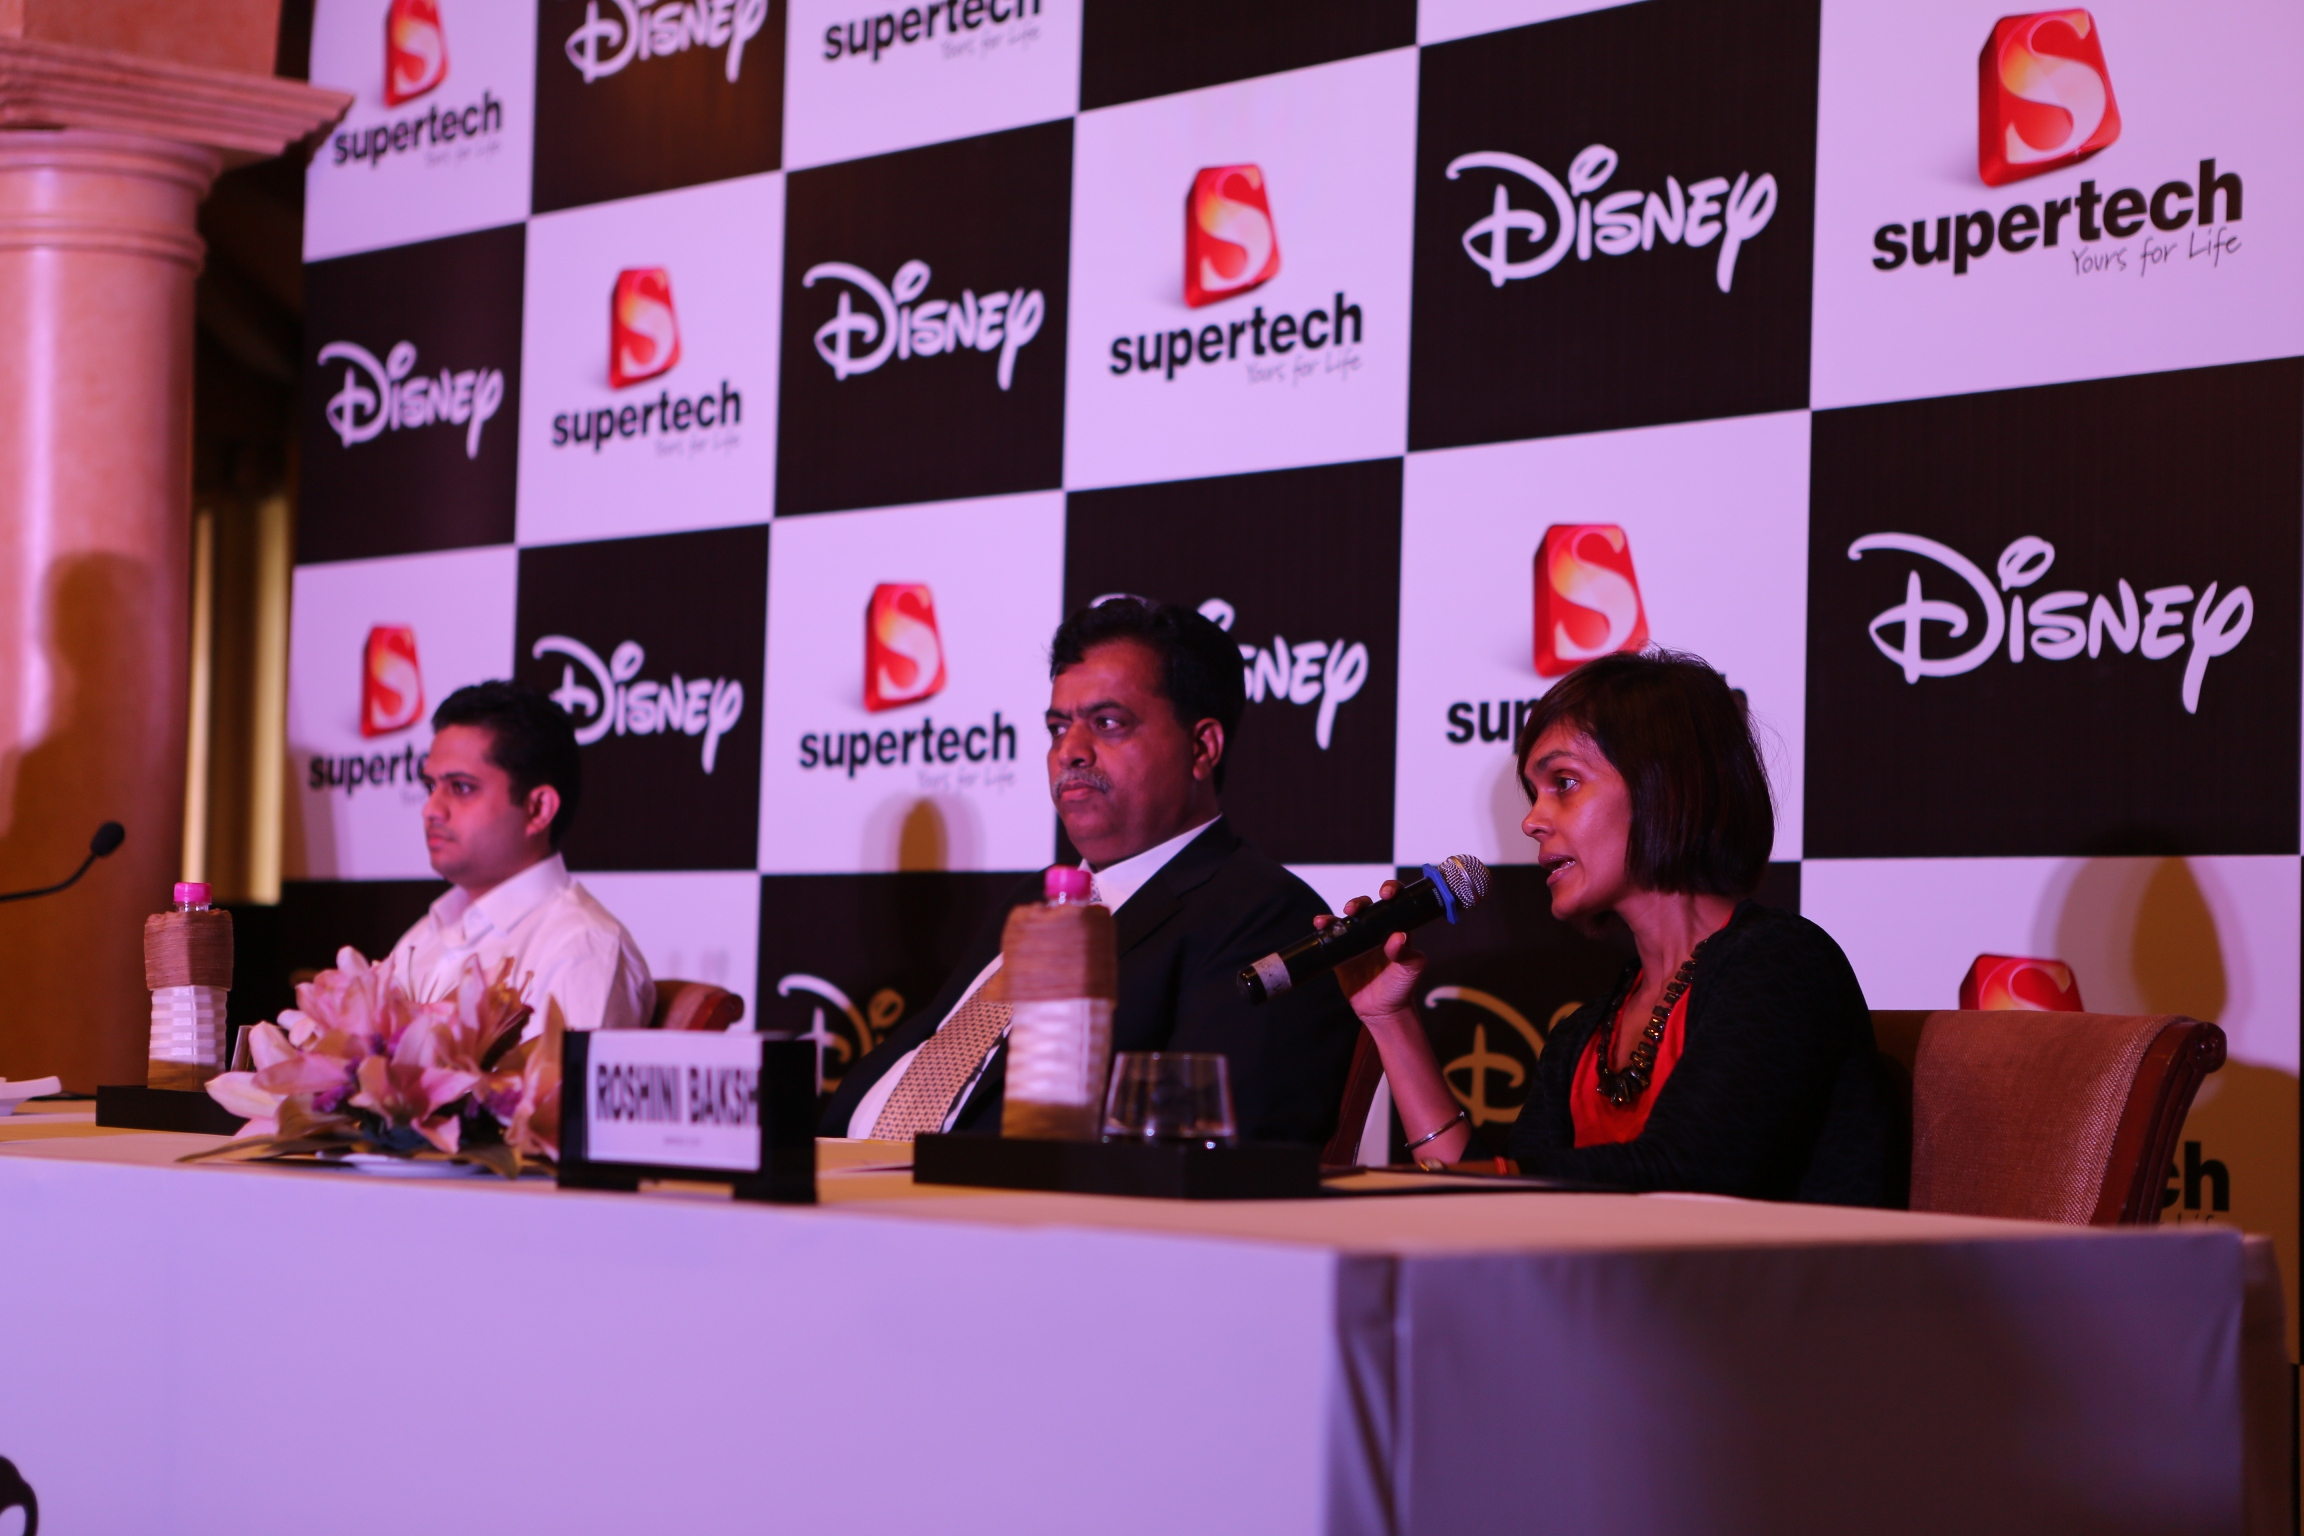 Supertech-Disney, India real estate news, Indian realty news, Property new, Home, Policy Advocacy, Activism, Mall, Retail, Office space, SEZ, IT/ITeS, Residential, Commercial, Hospitality, Project, Location, Regulation, FDI, Taxation, Investment, Banking, Property Management, Ravi Sinha, Track2Media, Track2Realty